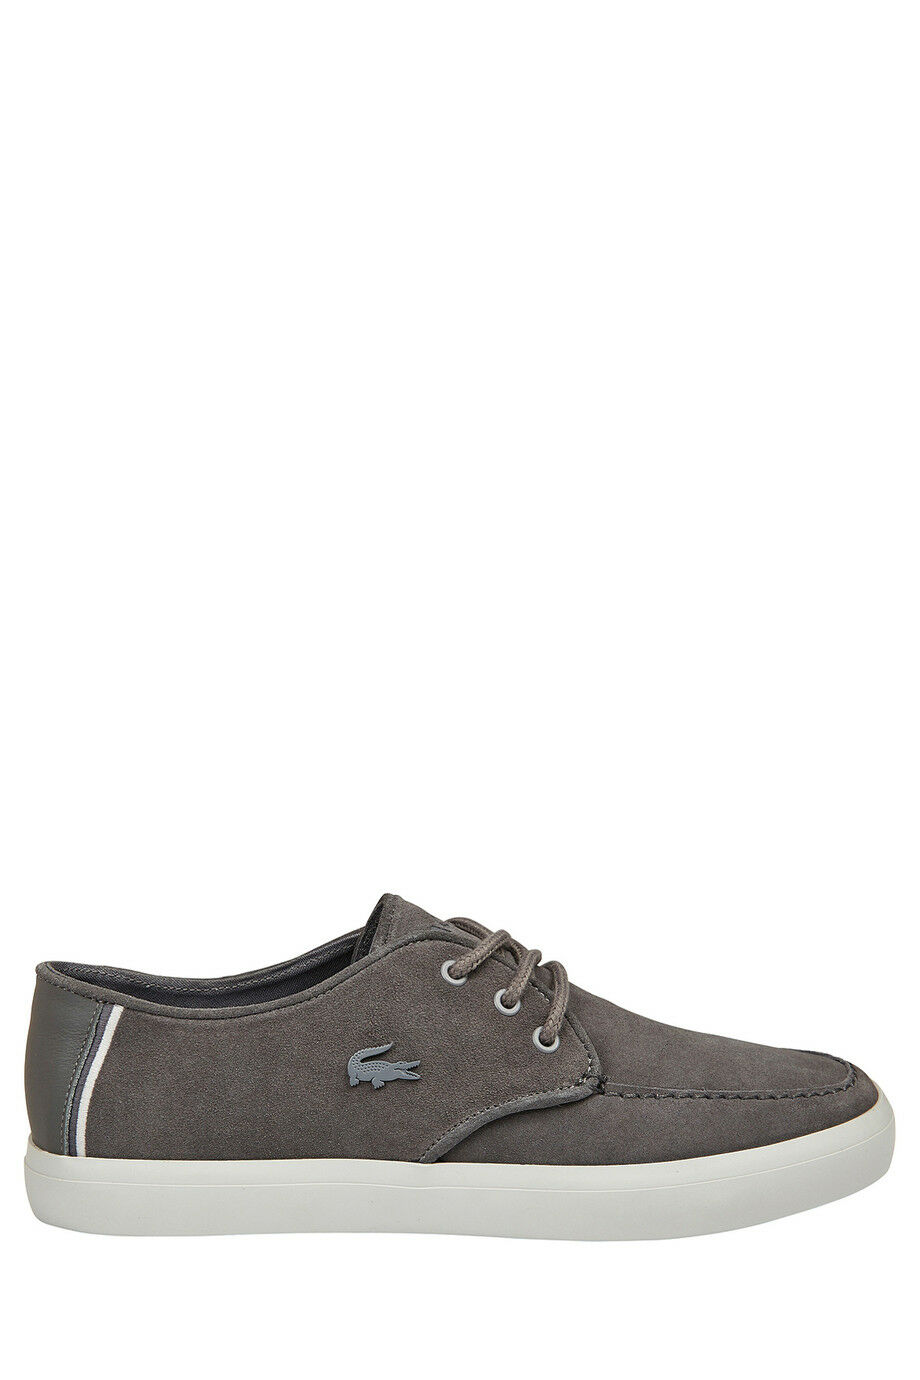 Lacoste Men's Sevrin 317 1 Cam BLK Casual Dark Grey Sneakers